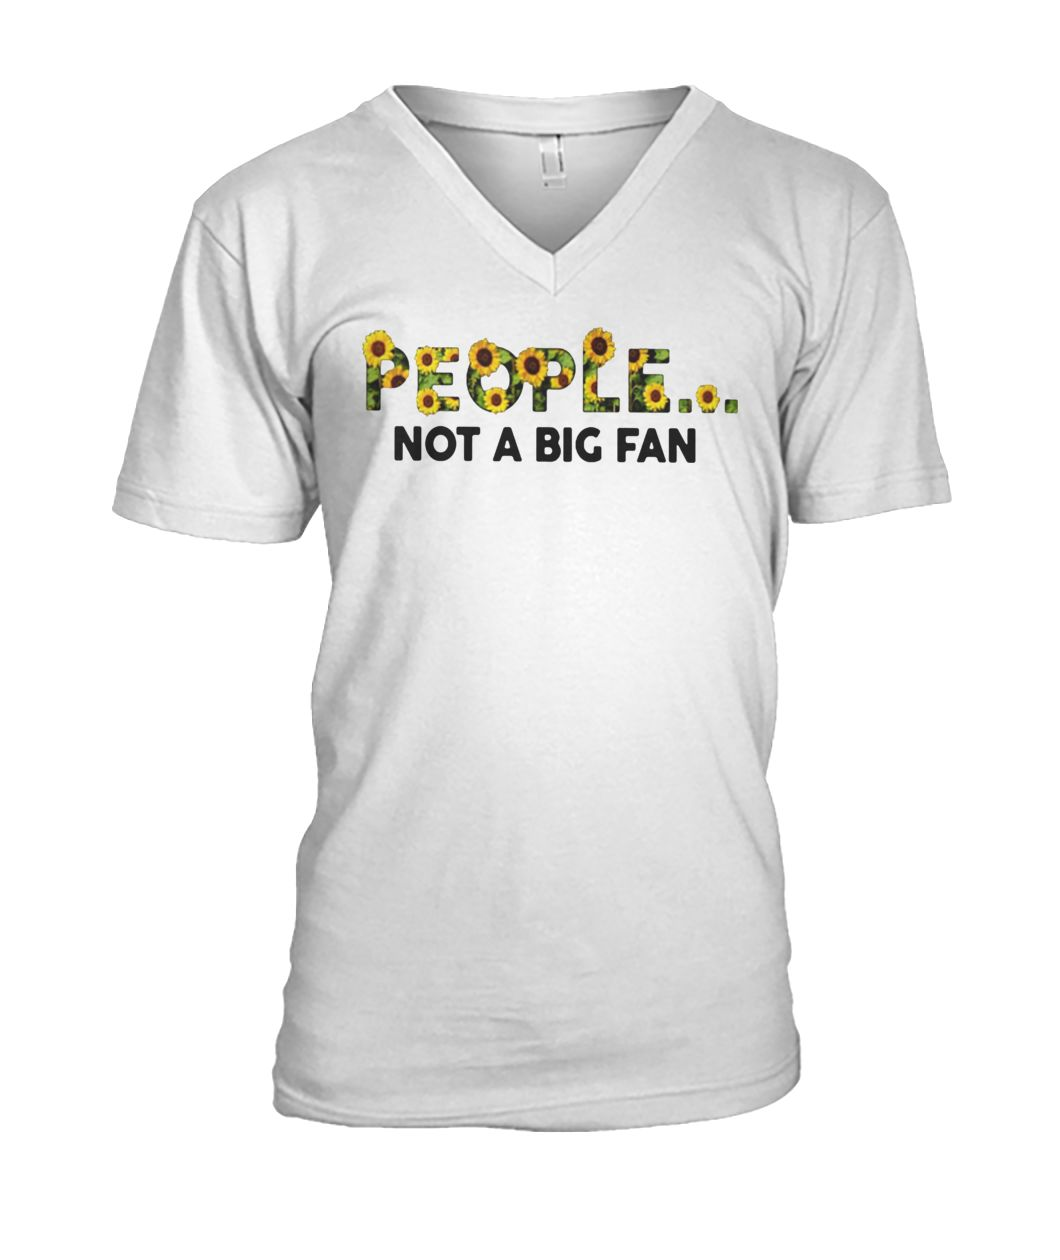 Sunflower people not a big fan mens v-neck